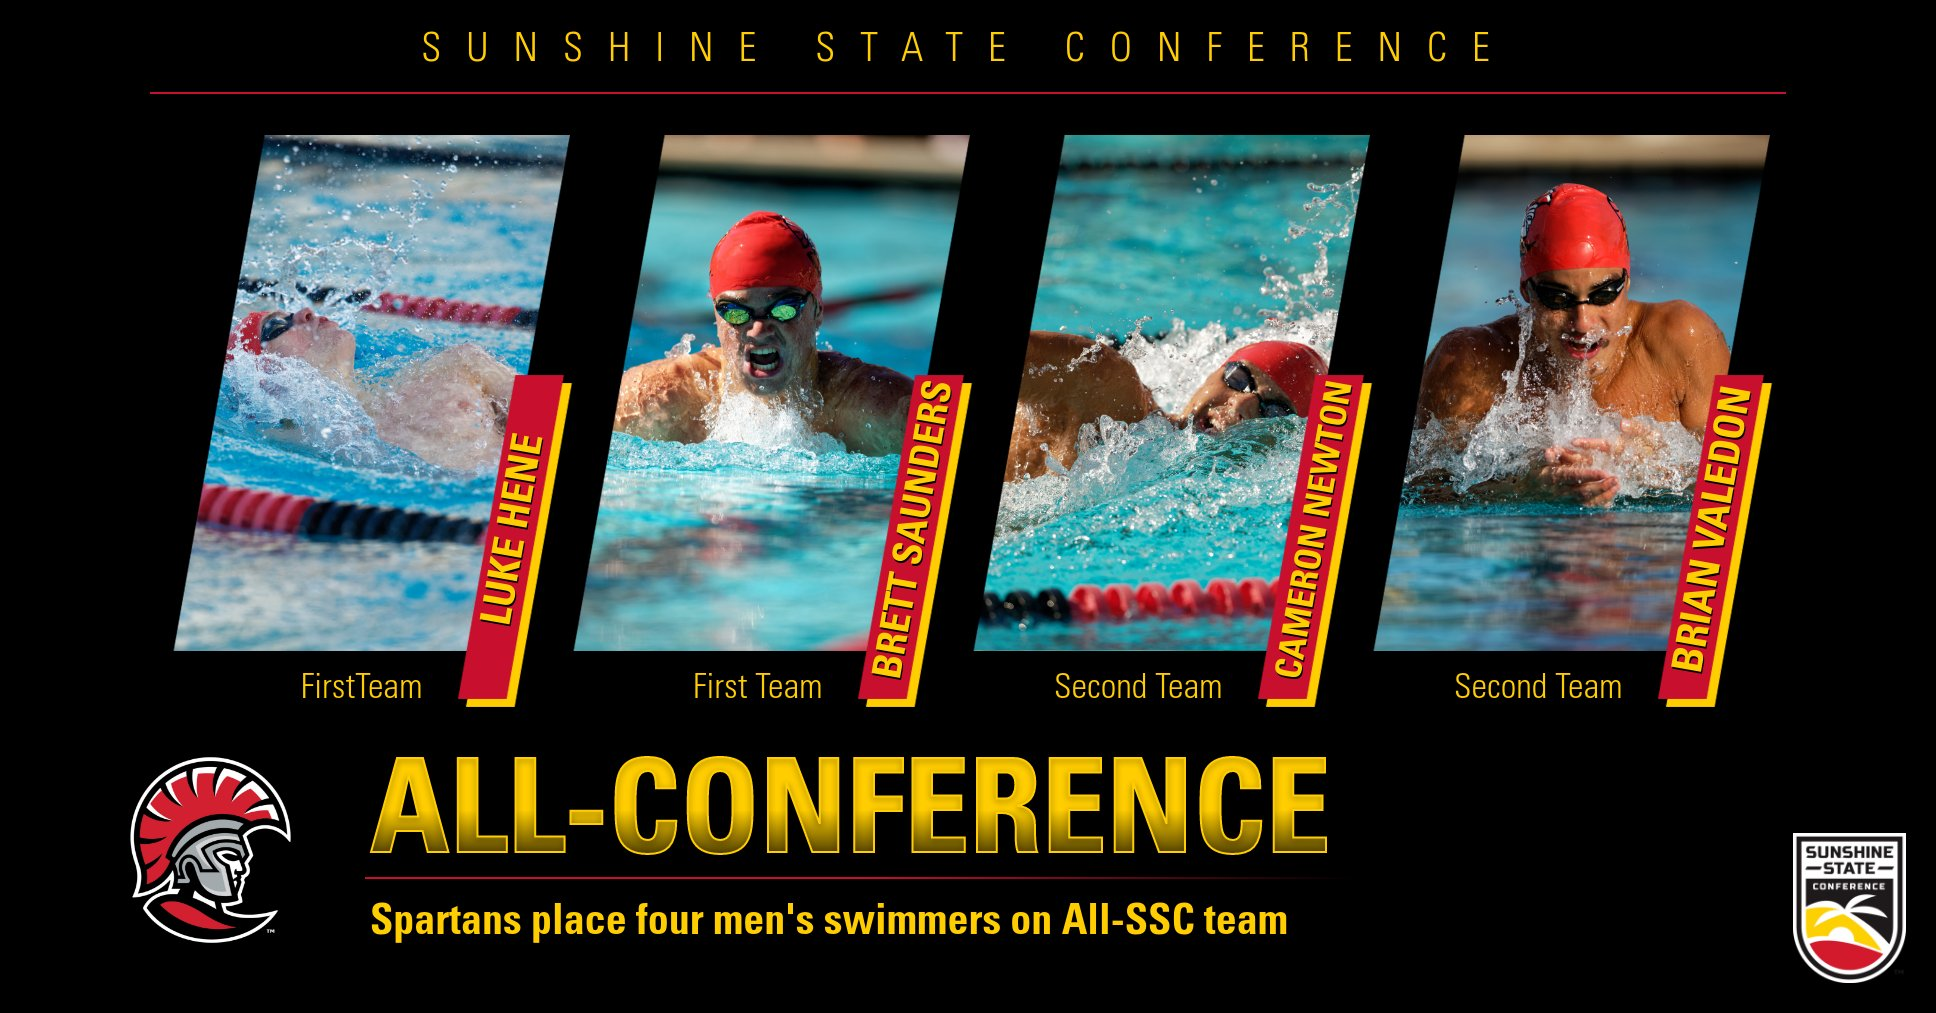 UT Men's Swimming Has Four on All-SSC Team